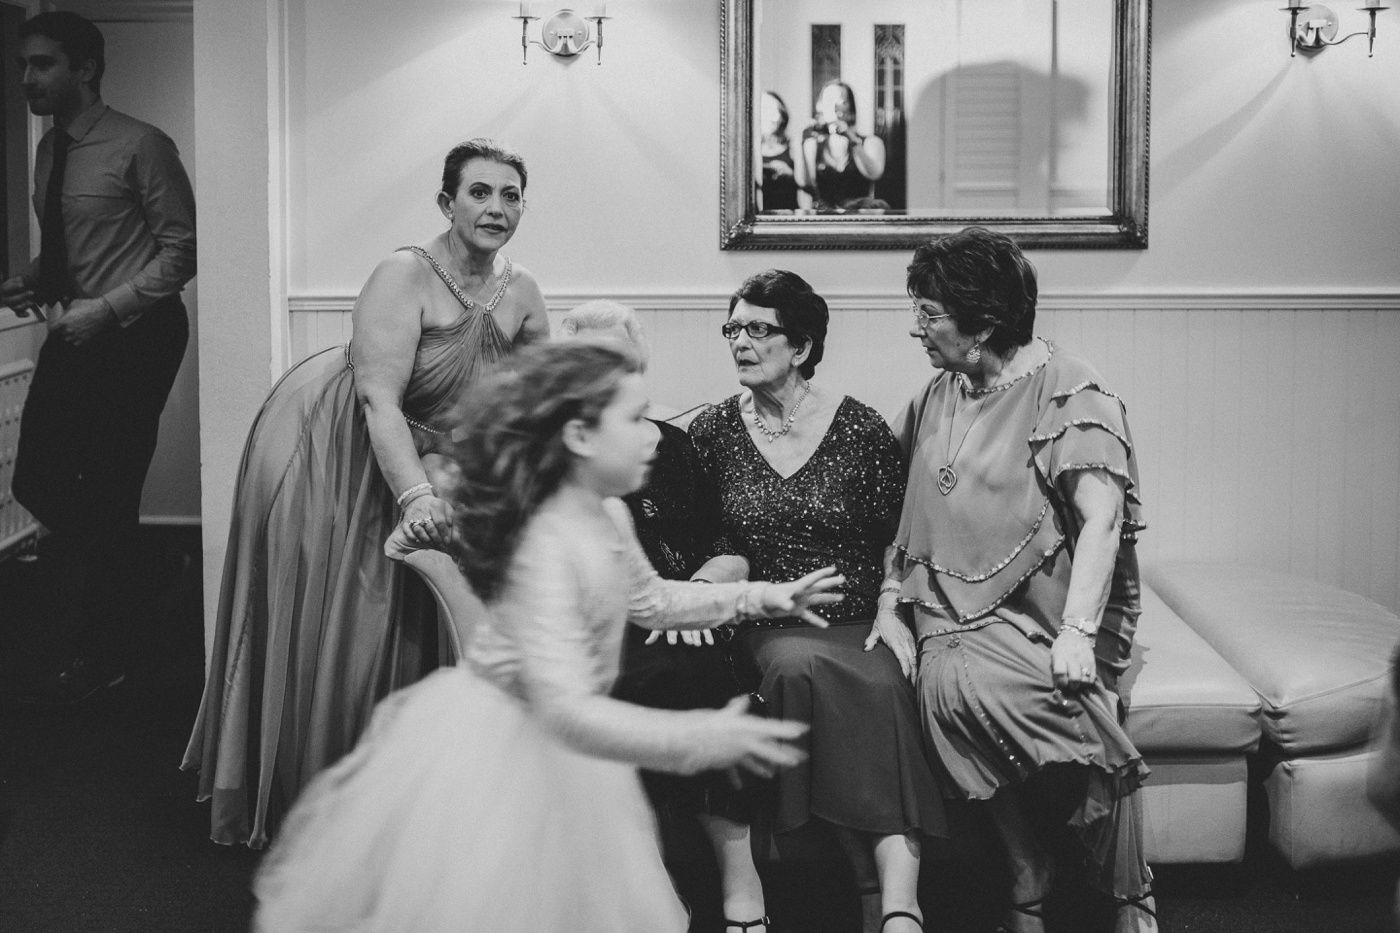 wesleybianca_dandenongs-sherbrooke-poets-lane-wedding_melbourne-quirky-fun-candid-wedding-photography_79